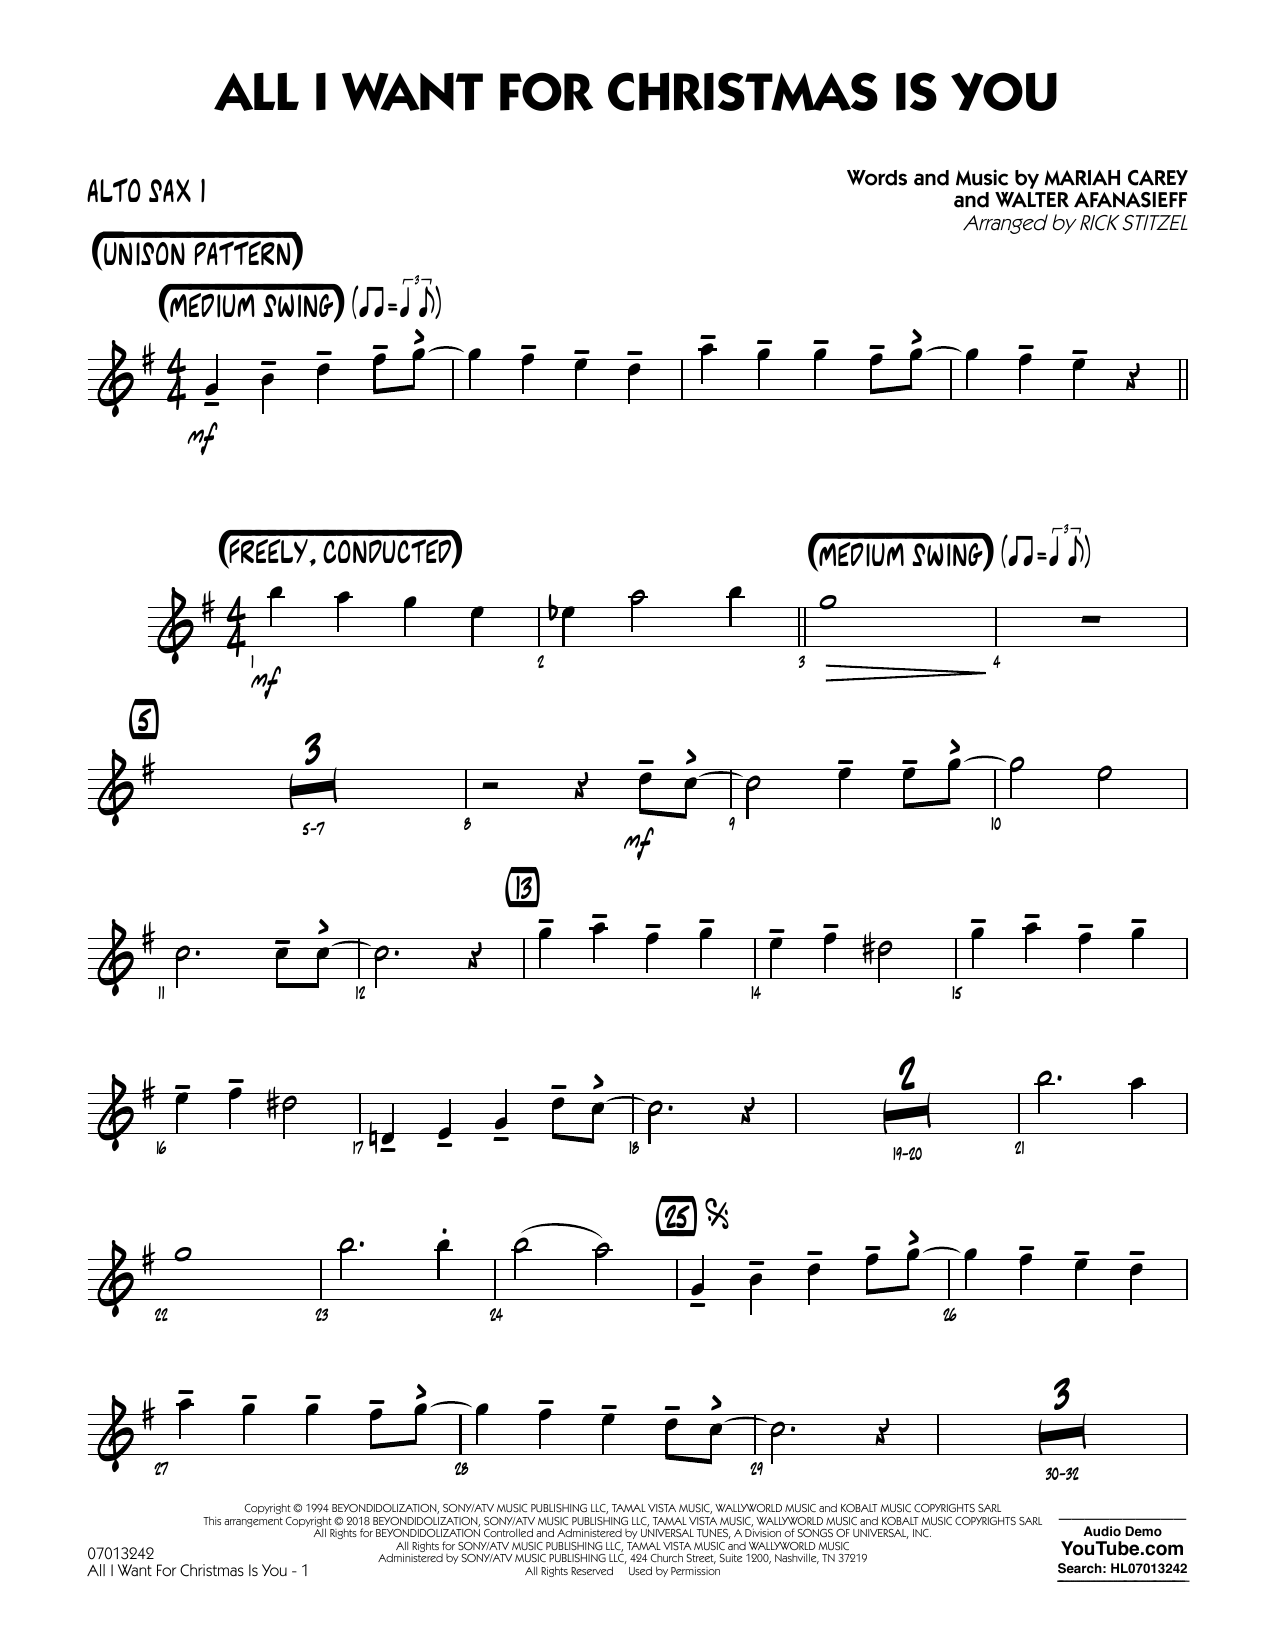 All I Want For Christmas Is You - Alto Sax 1 at Stanton\'s Sheet Music